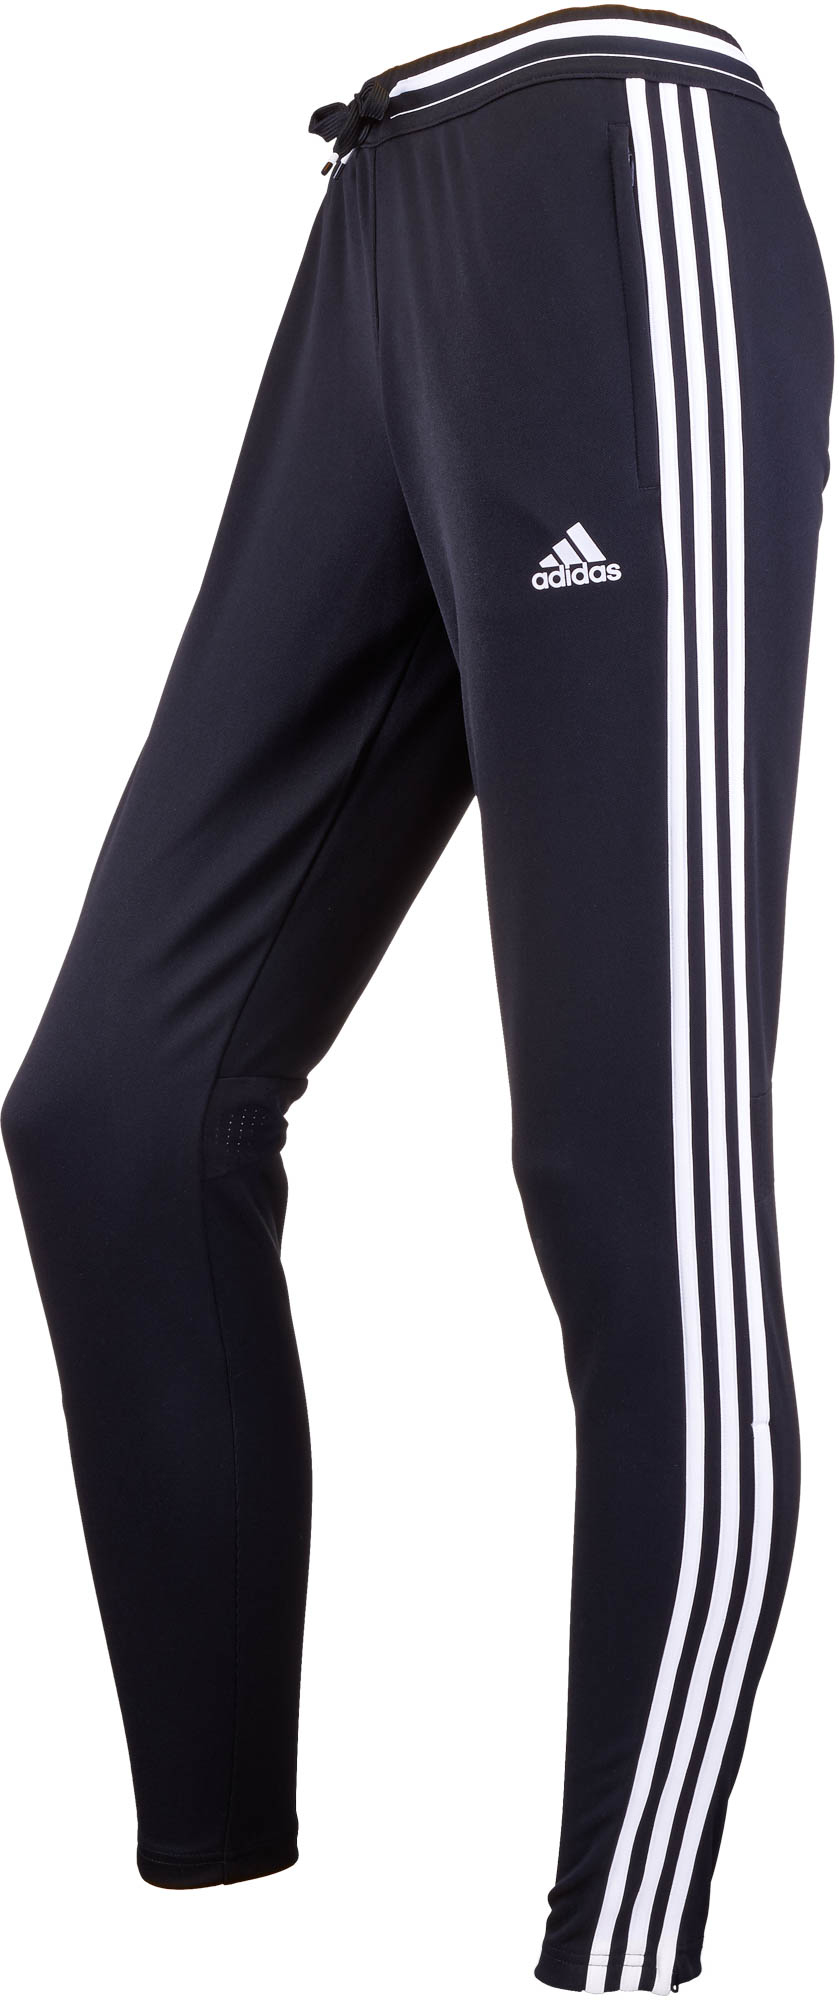 check out 8f273 d32ae adidas Womens Condivo 16 Training Pant – Black  White